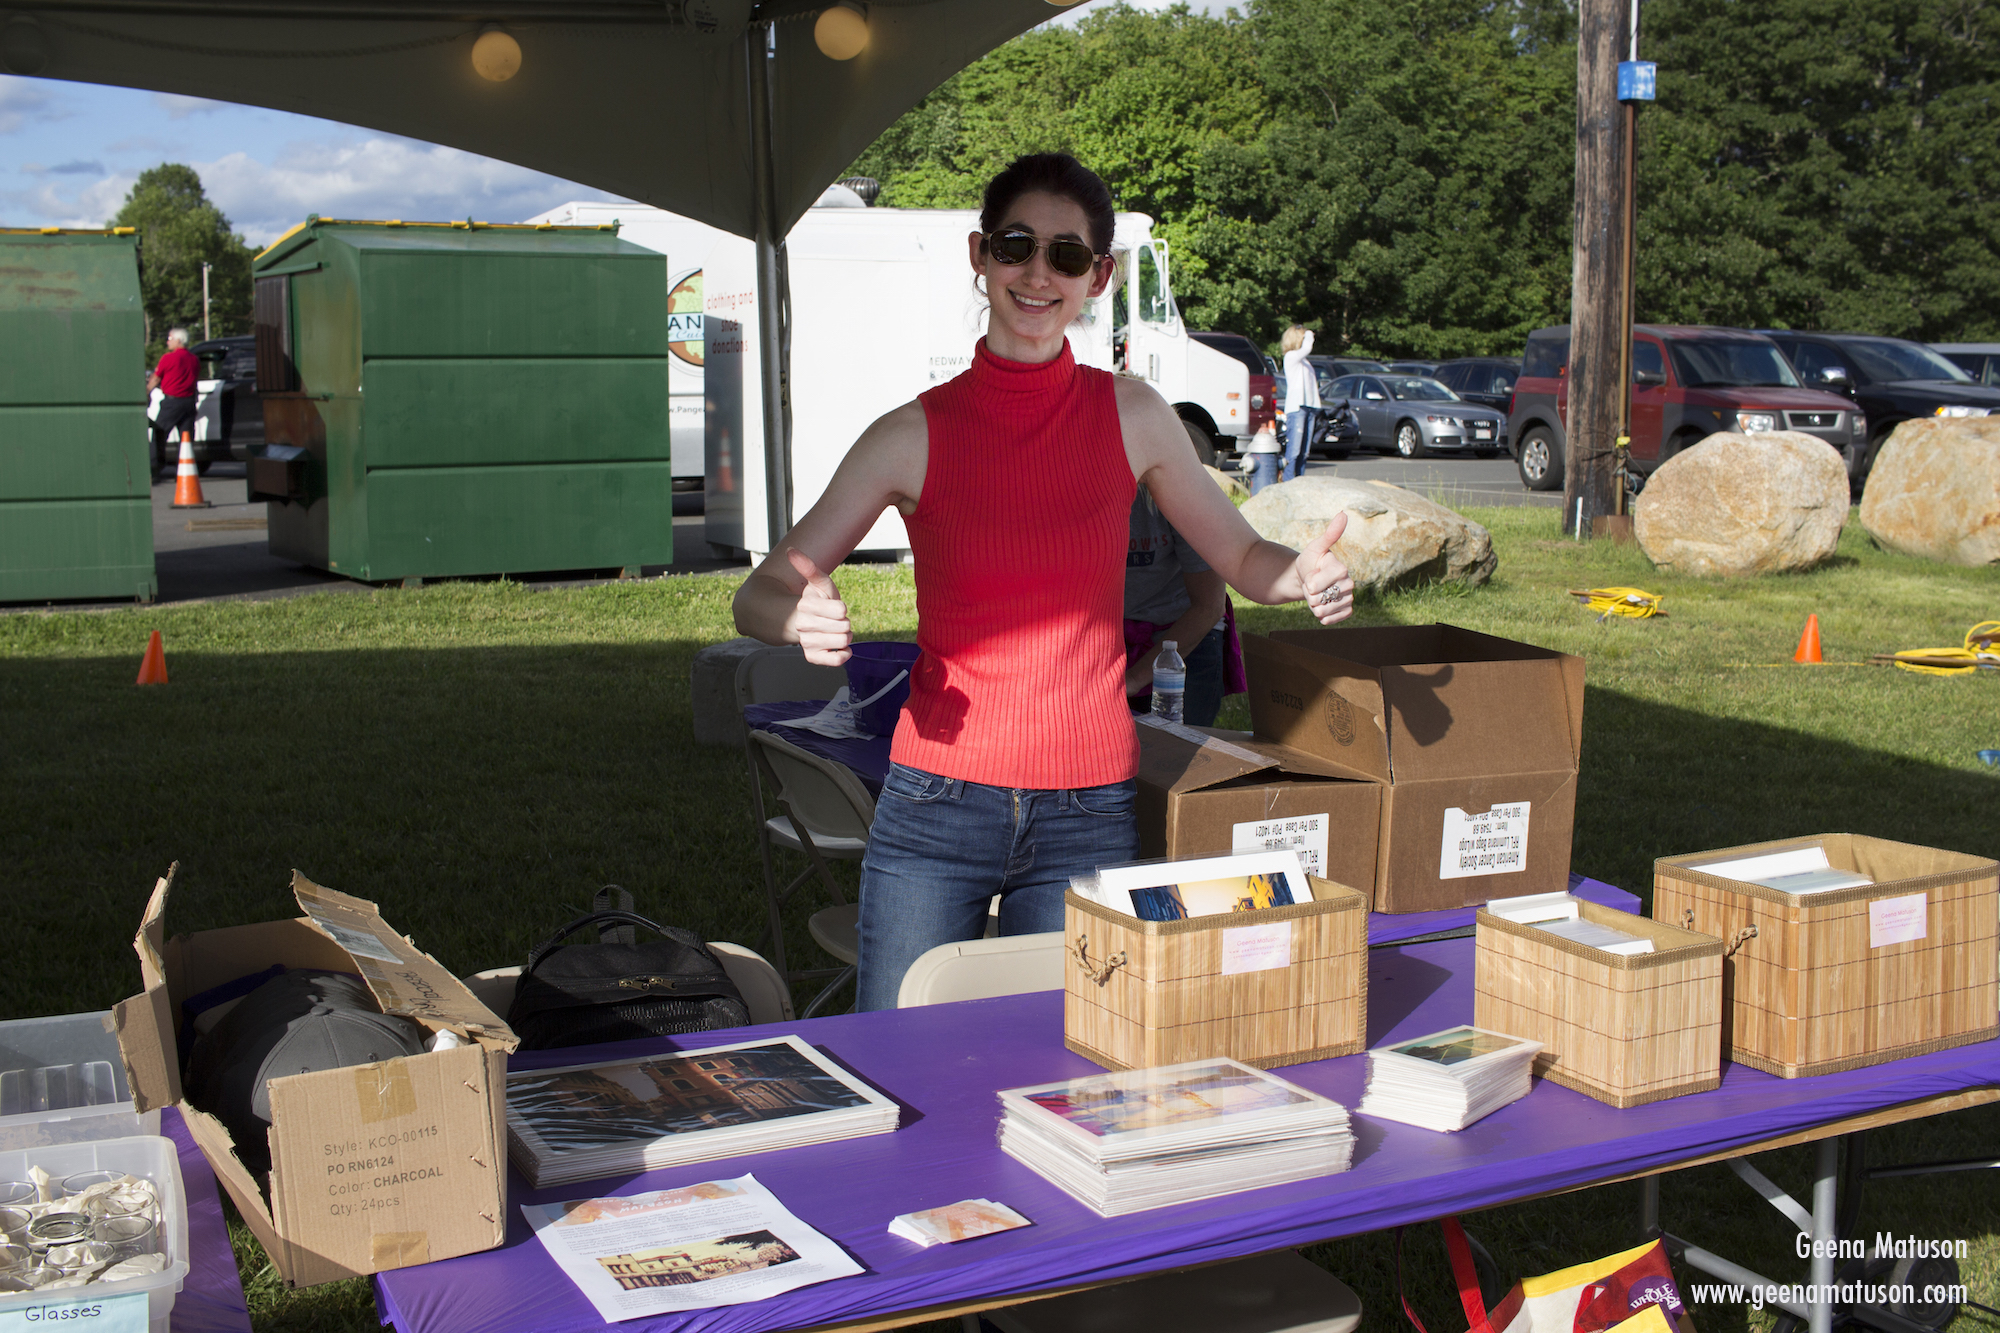 Geena Matuson at Relay for Life in Medway, MA 2016. Photography by Joe Musacchia.